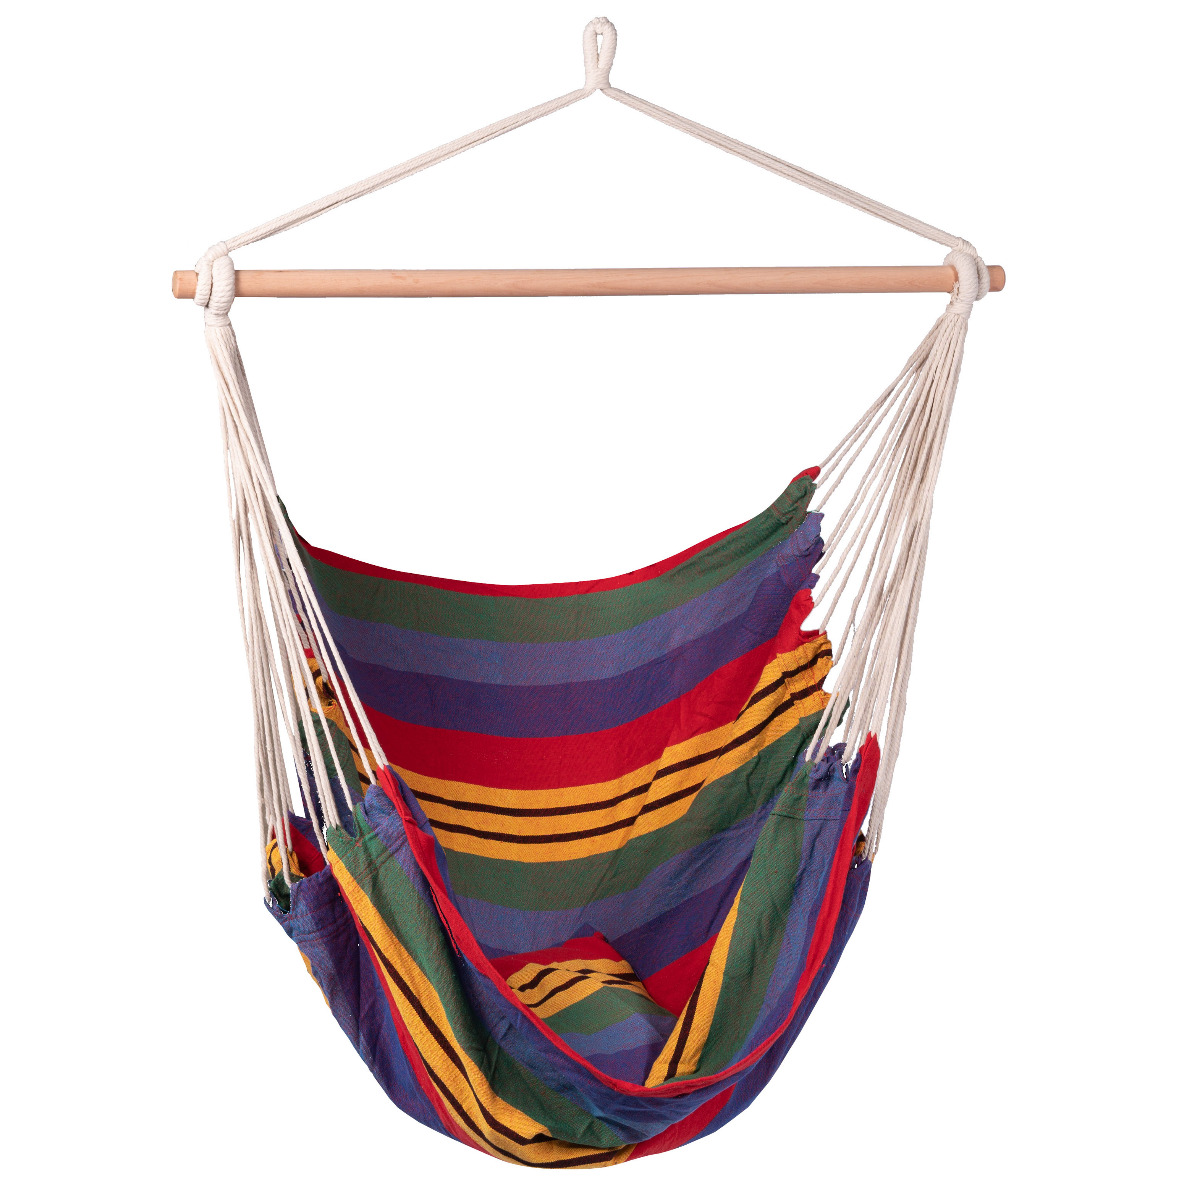 'Ibiza' Single Hangstoel - Veelkleurig - 123 Hammock